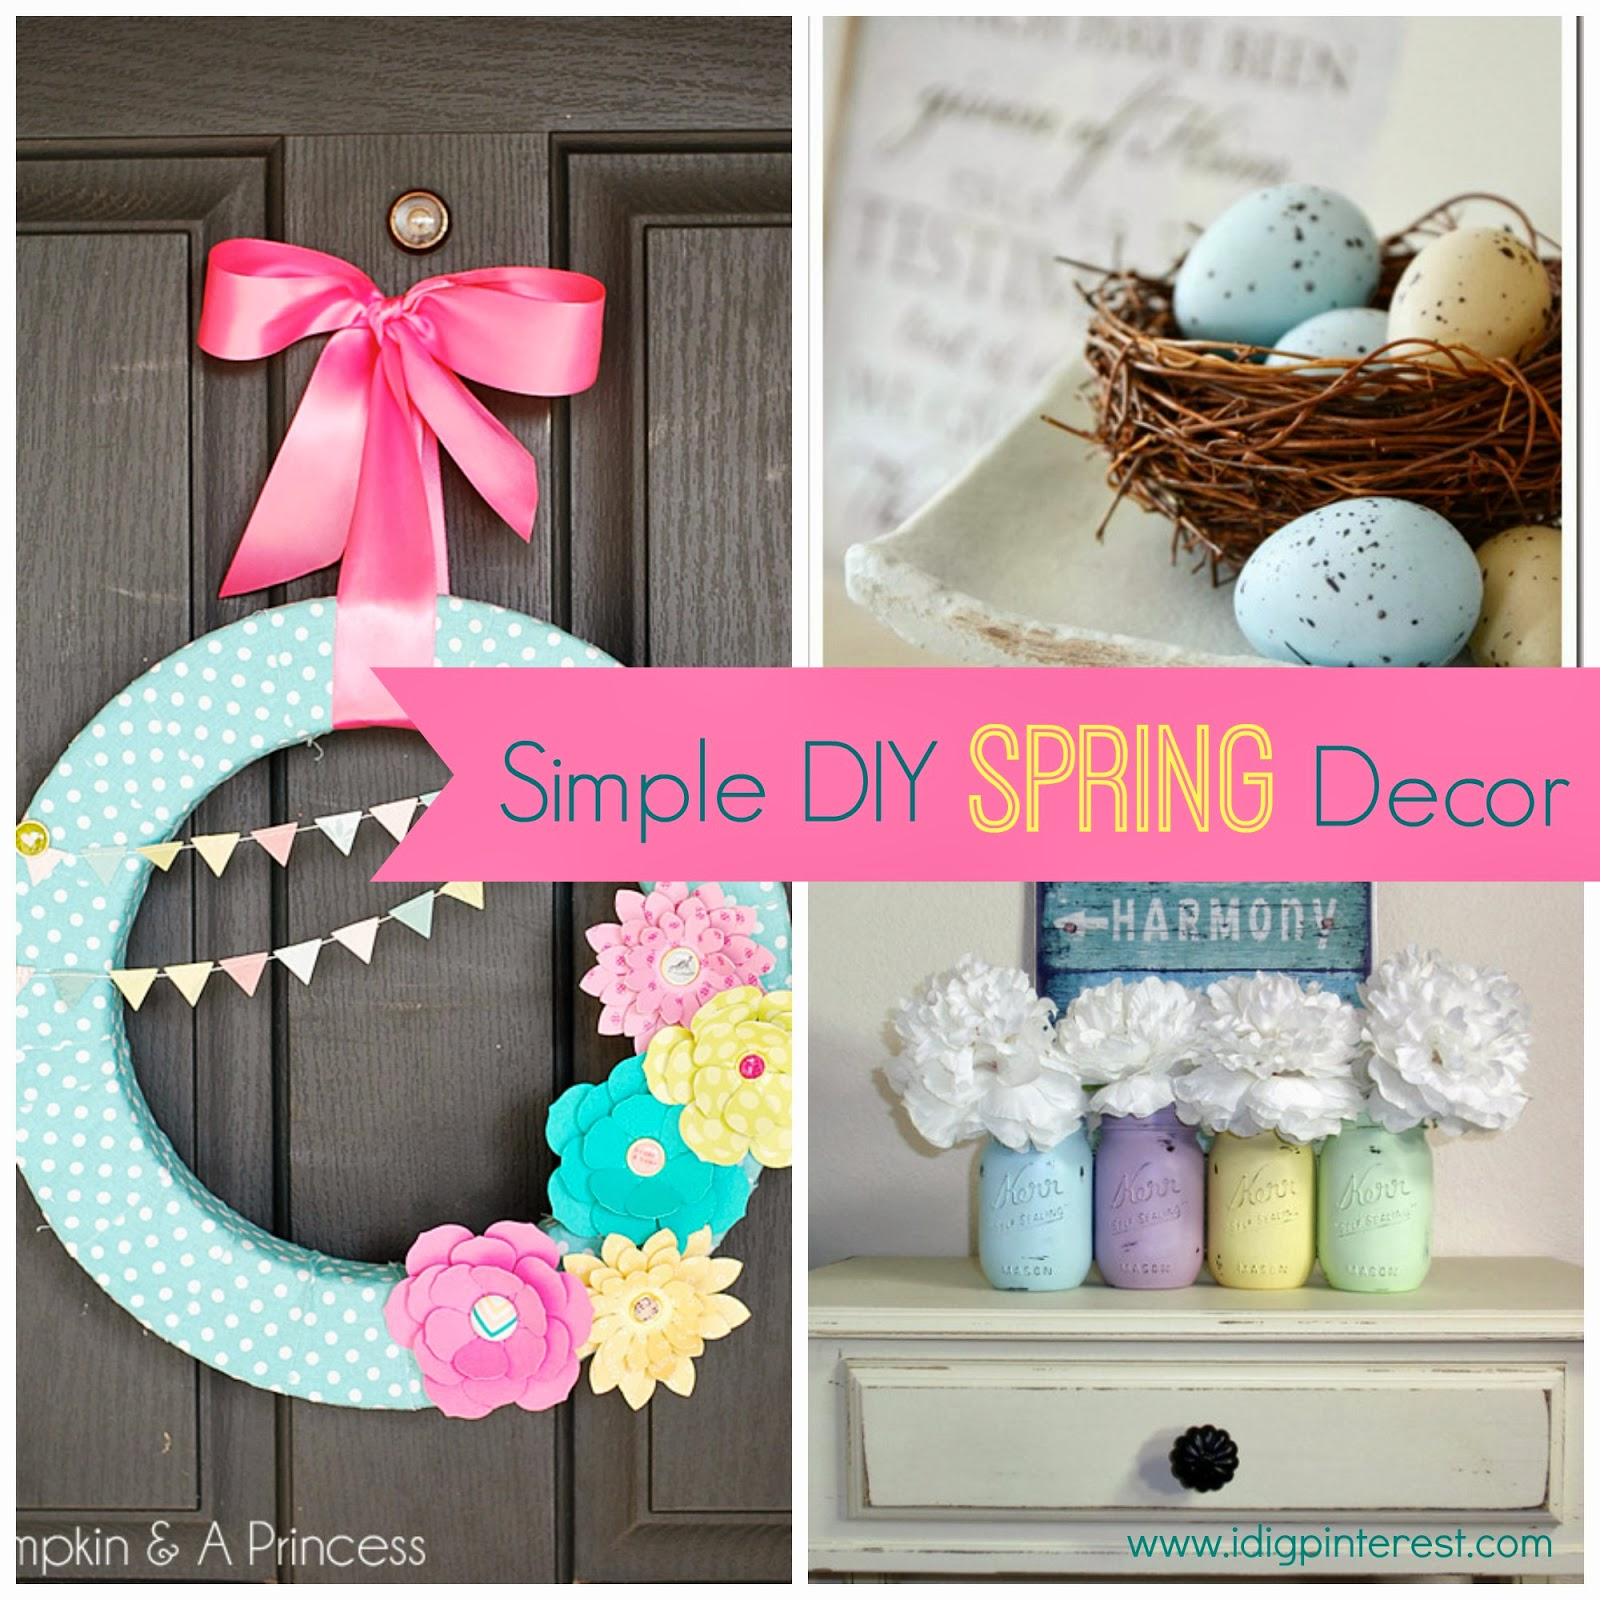 Simple diy spring decor ideas i dig pinterest Home decor ideas bedroom pinterest